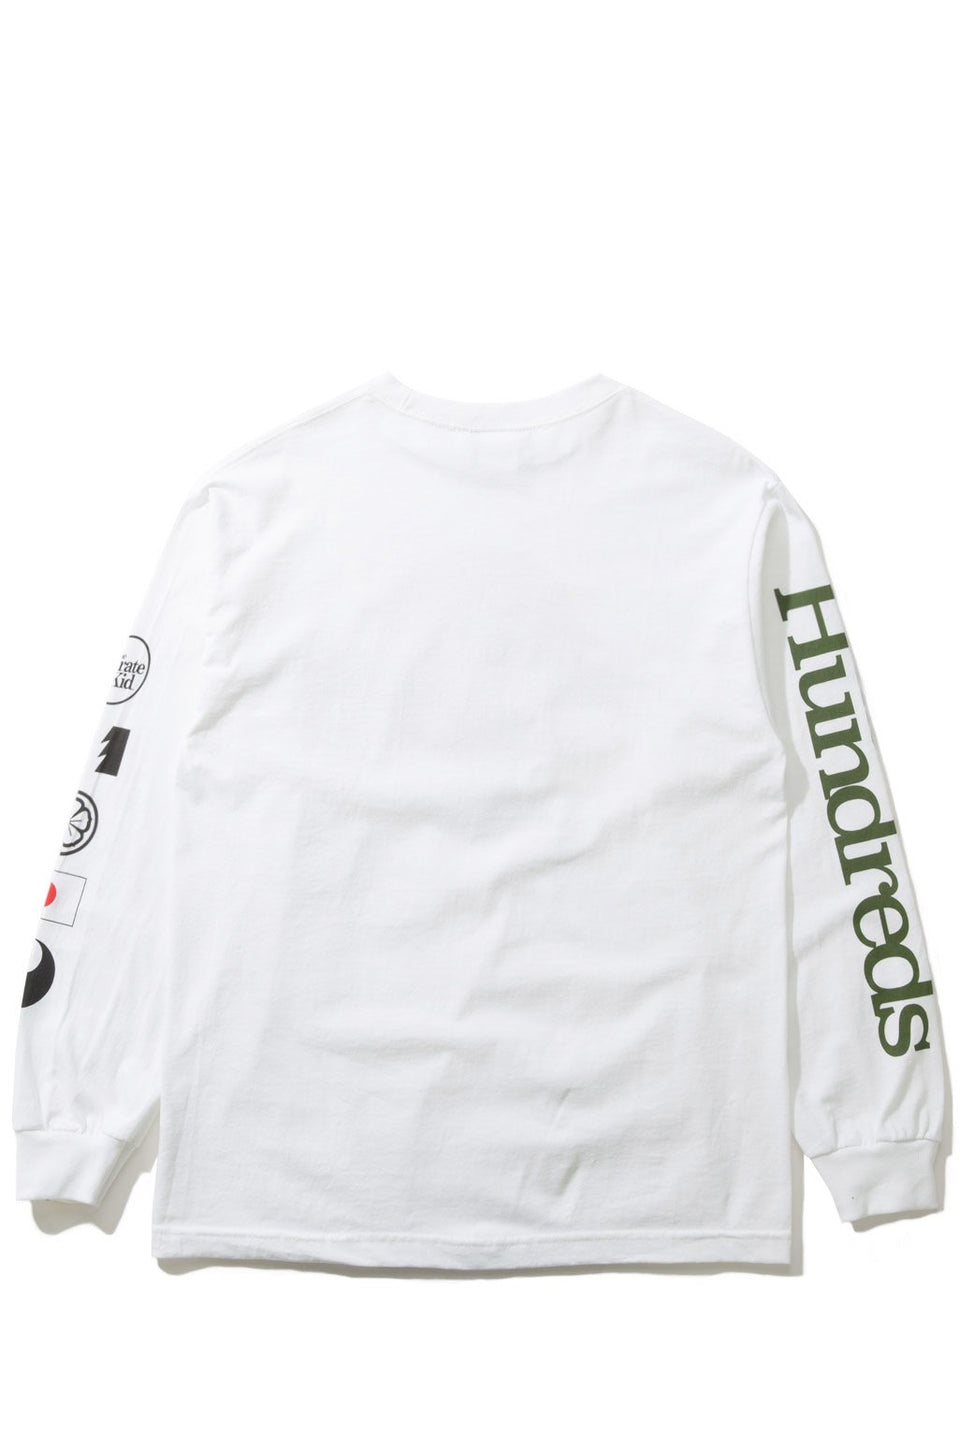 Bonsai L/S Shirt